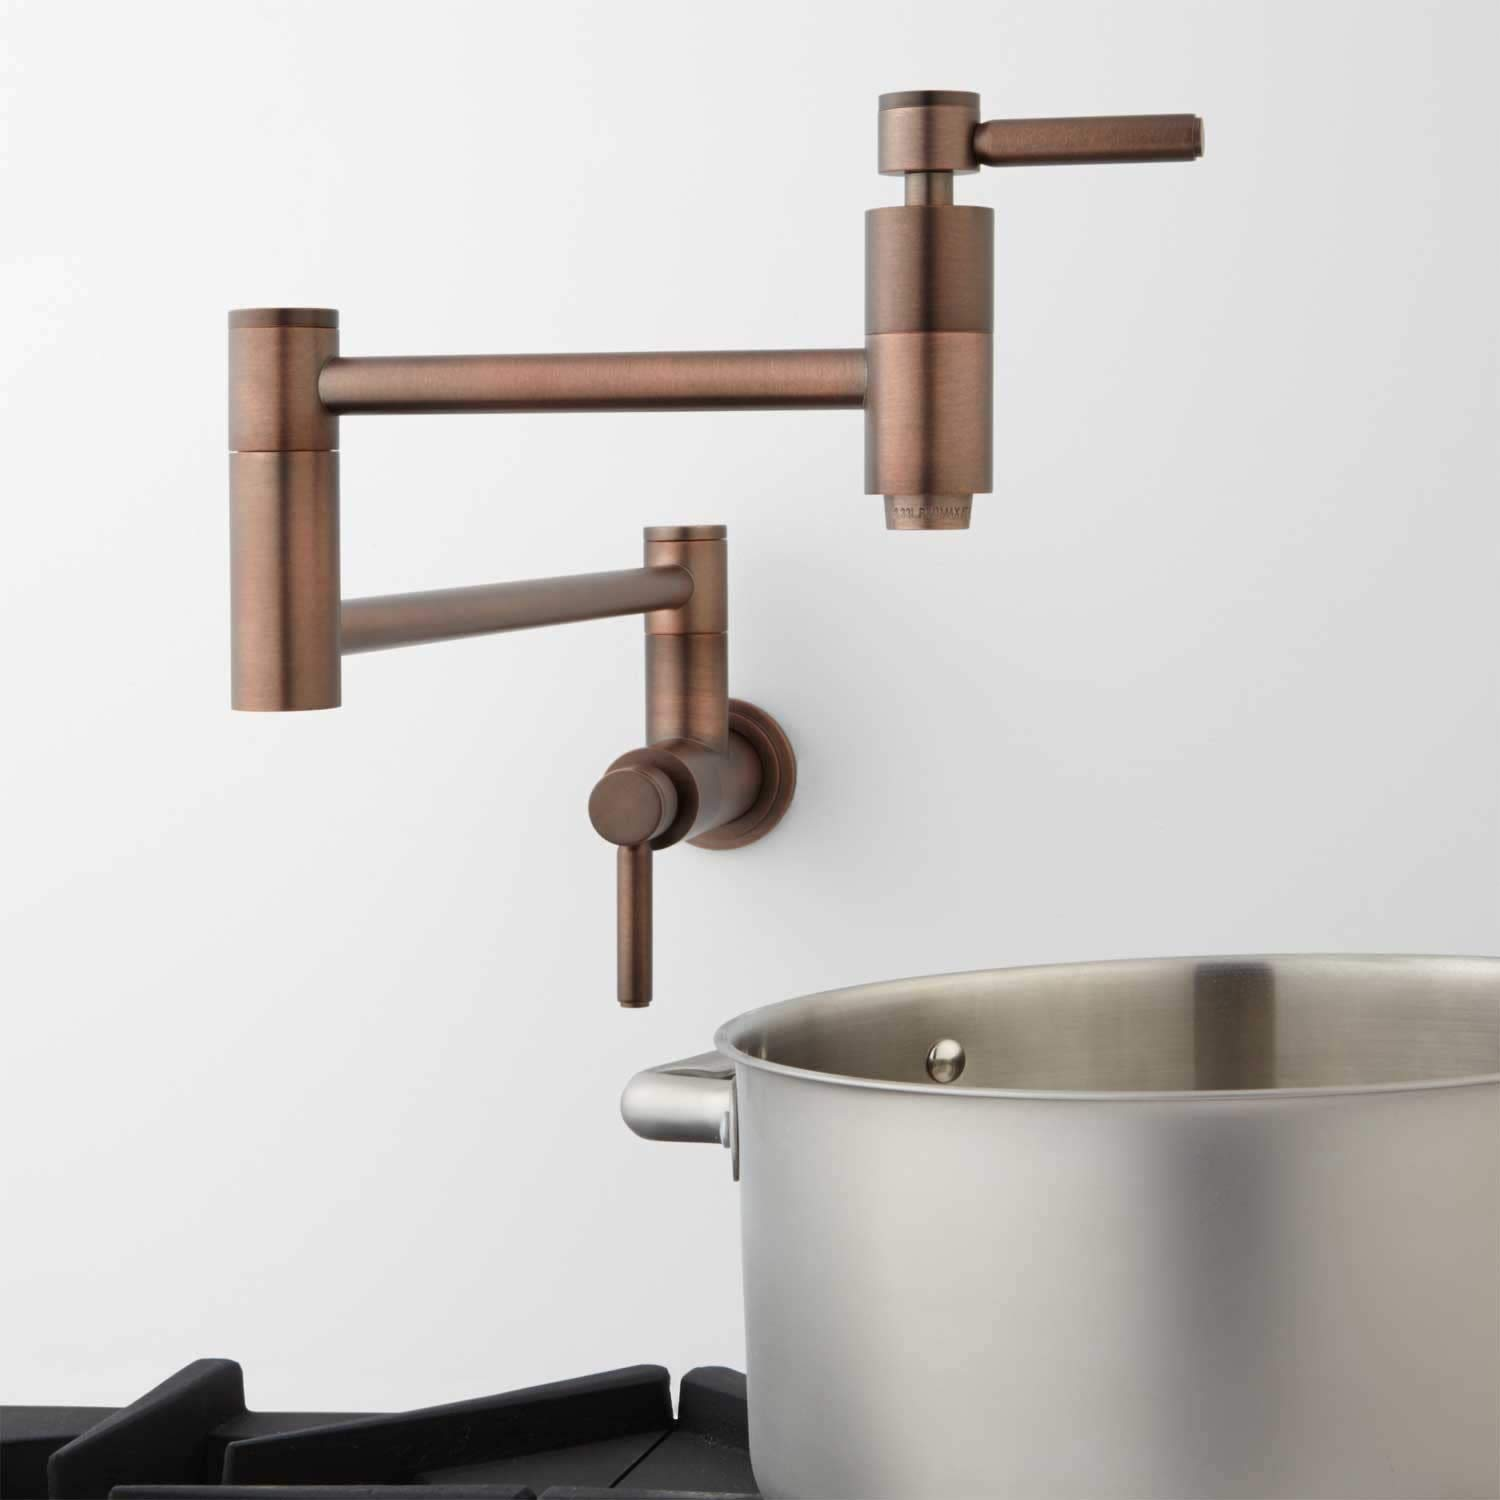 Signature Hardware 329628 Contemporary Double Handle Wall Mounted Pot Filler